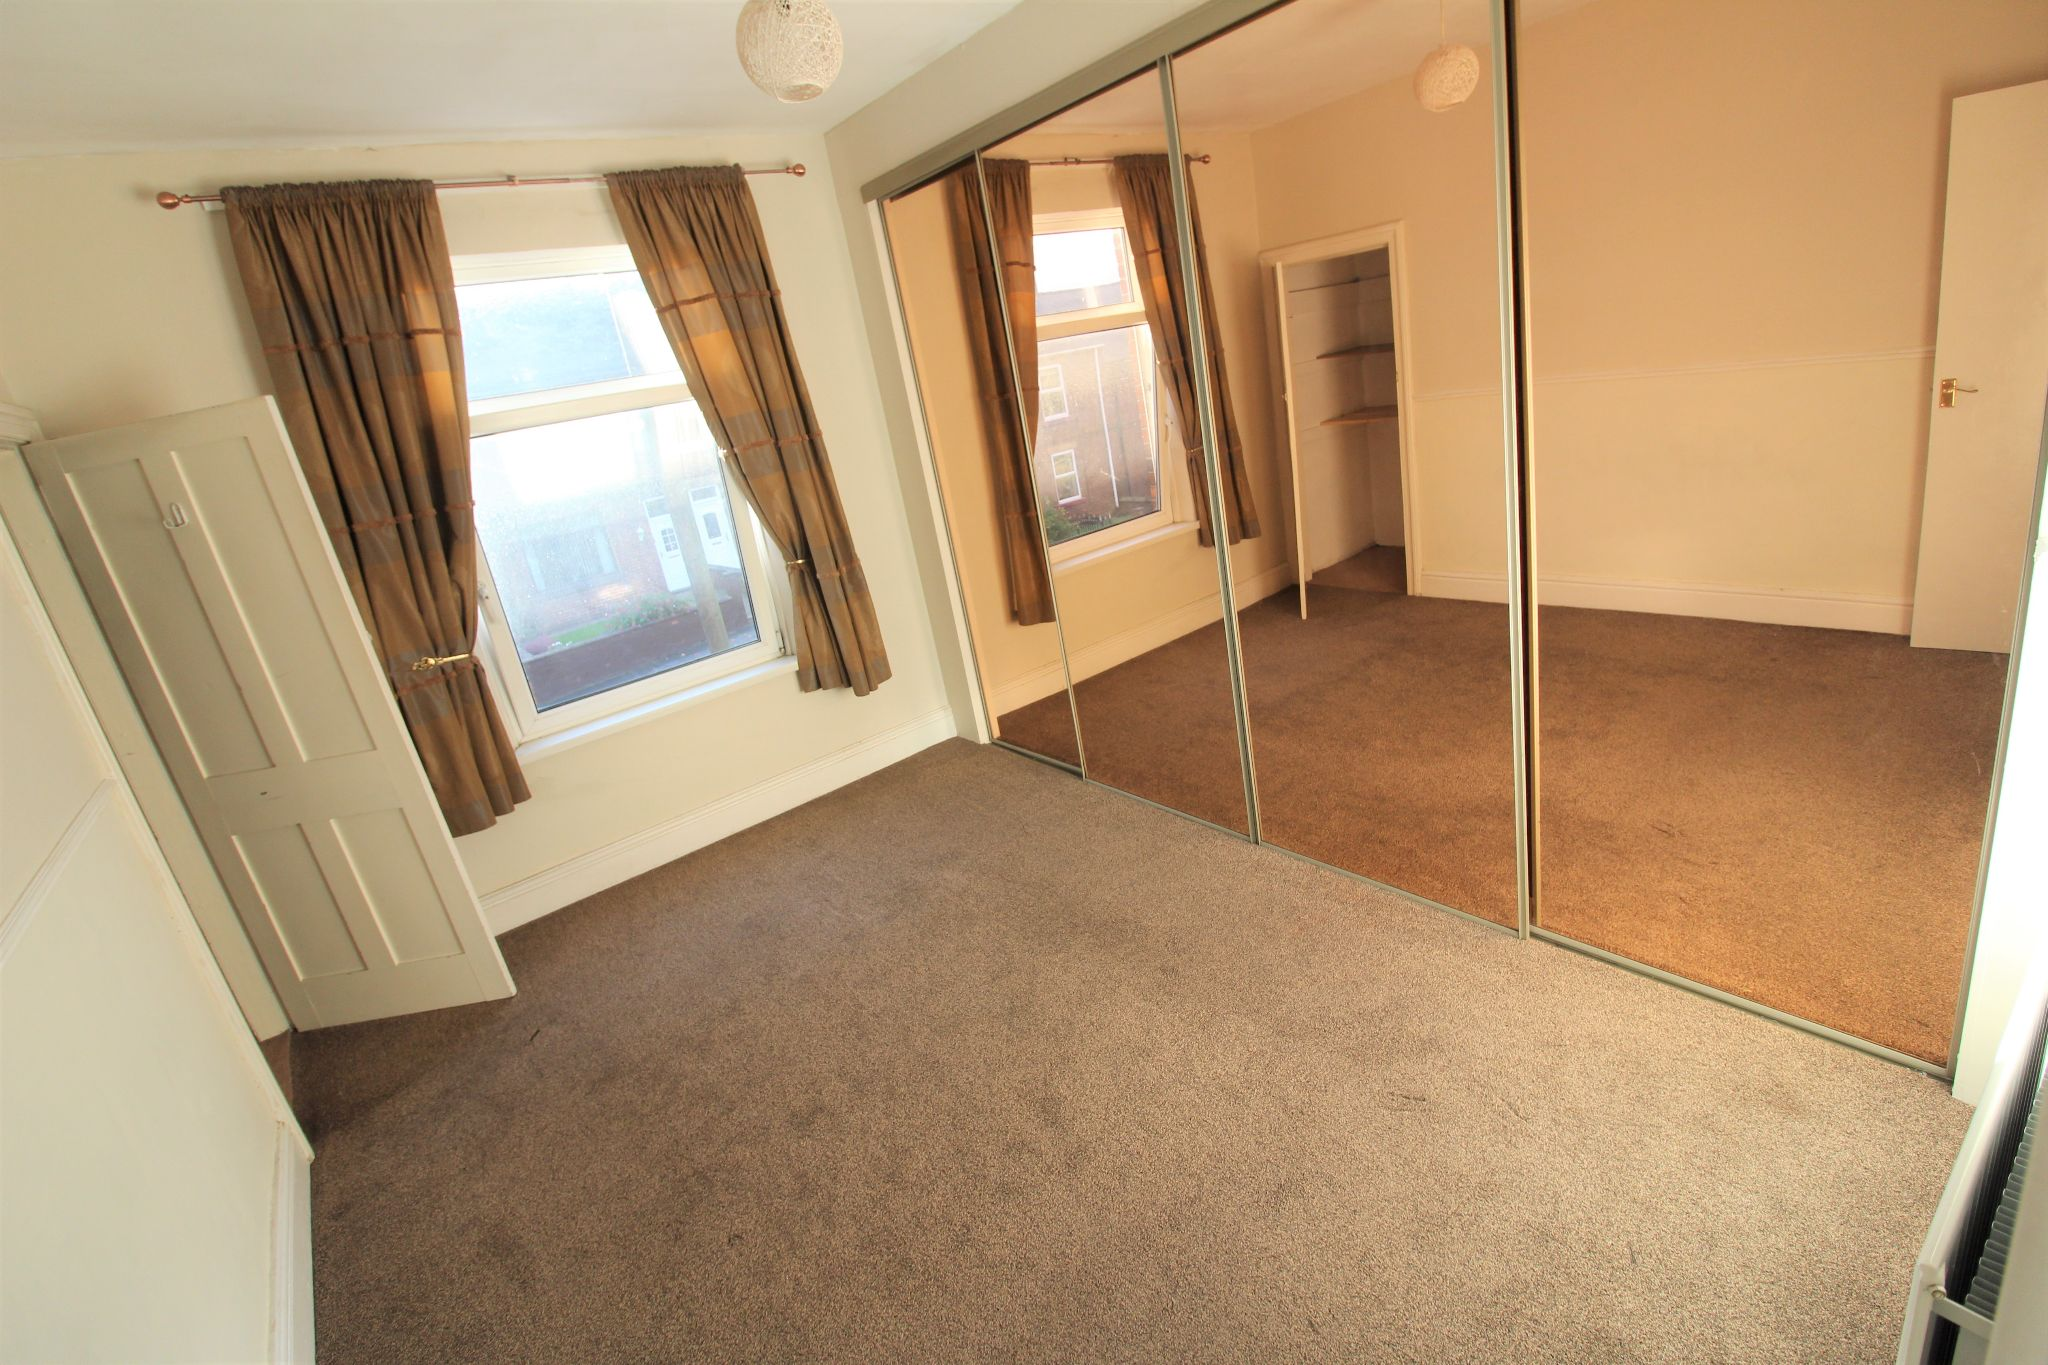 3 bedroom end terraced house For Sale in Willington And Hunwick - Photograph 50.